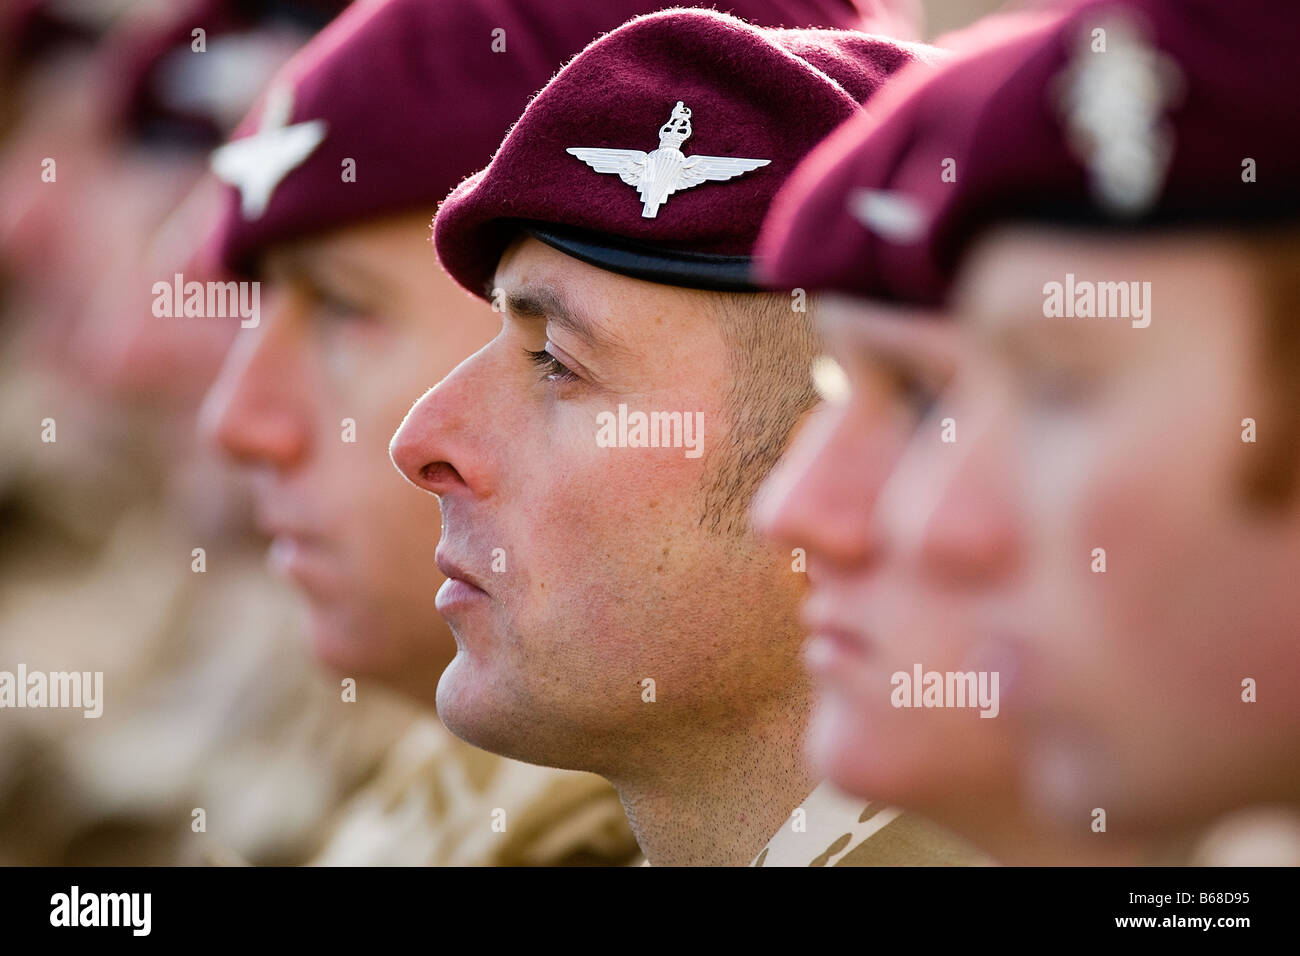 Members of the British Army's elite Parachute Regiment on